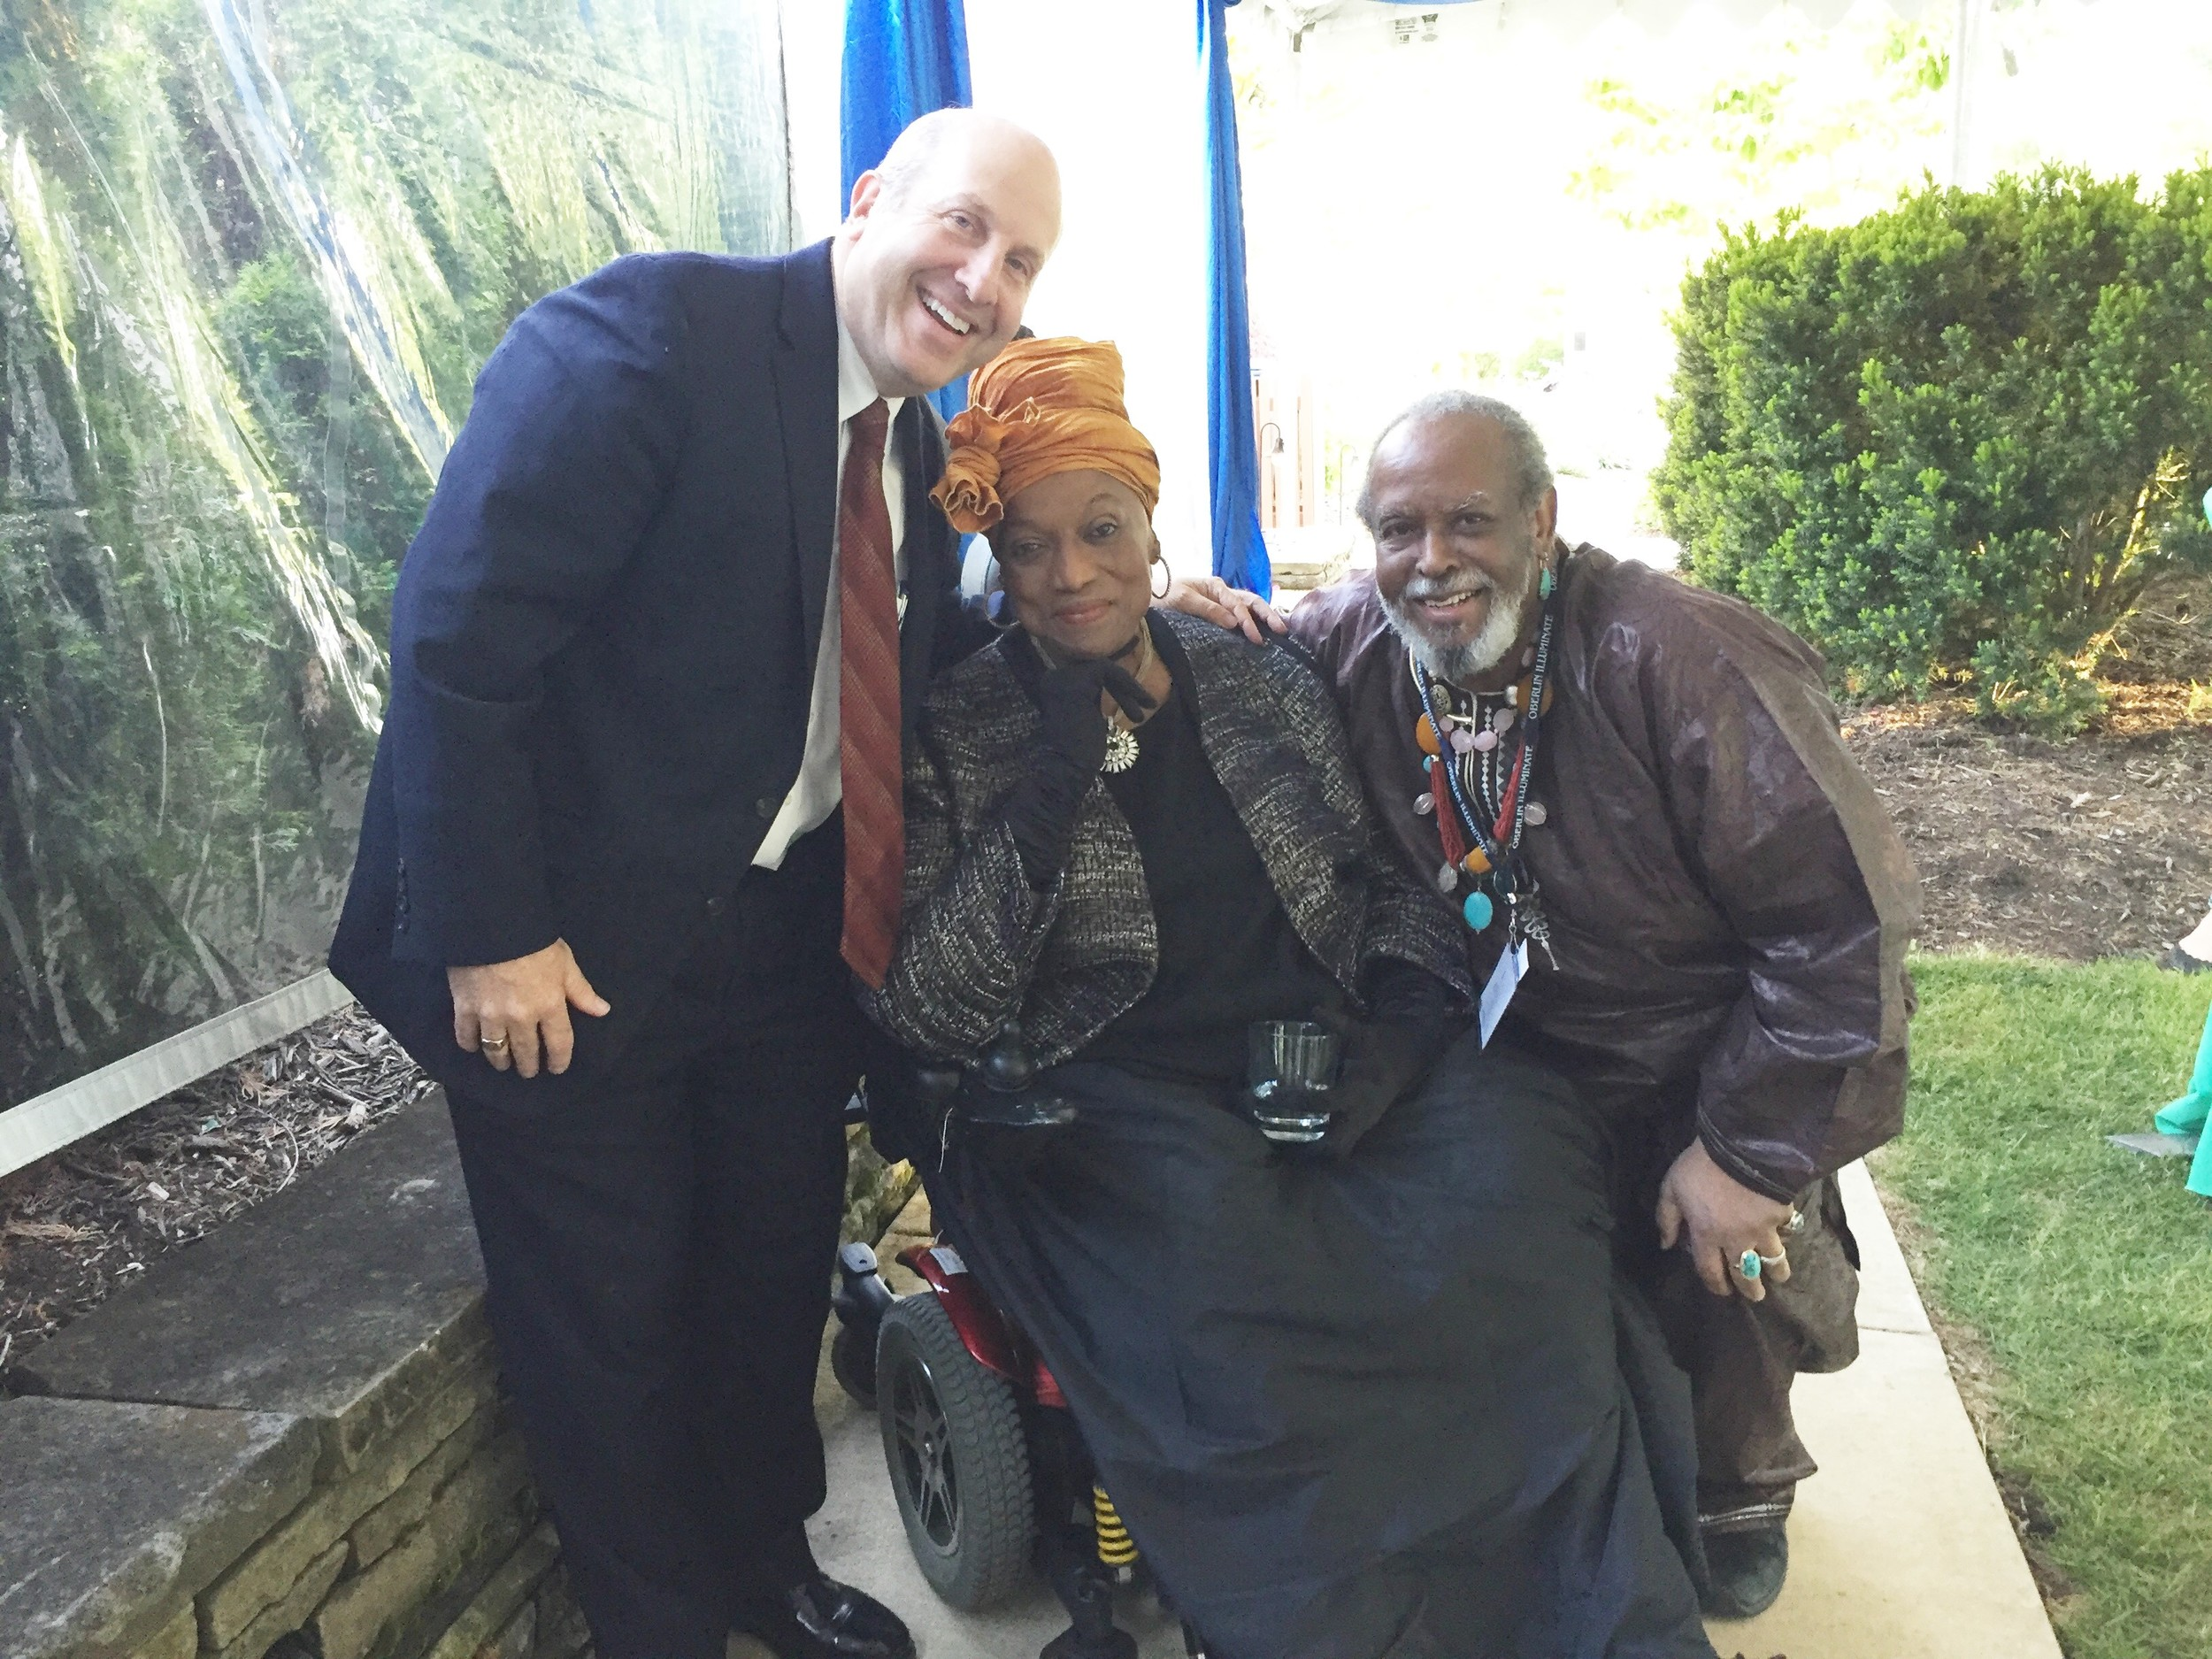 Diva and the Diva Jessye Norman_10_May 2016.jpg